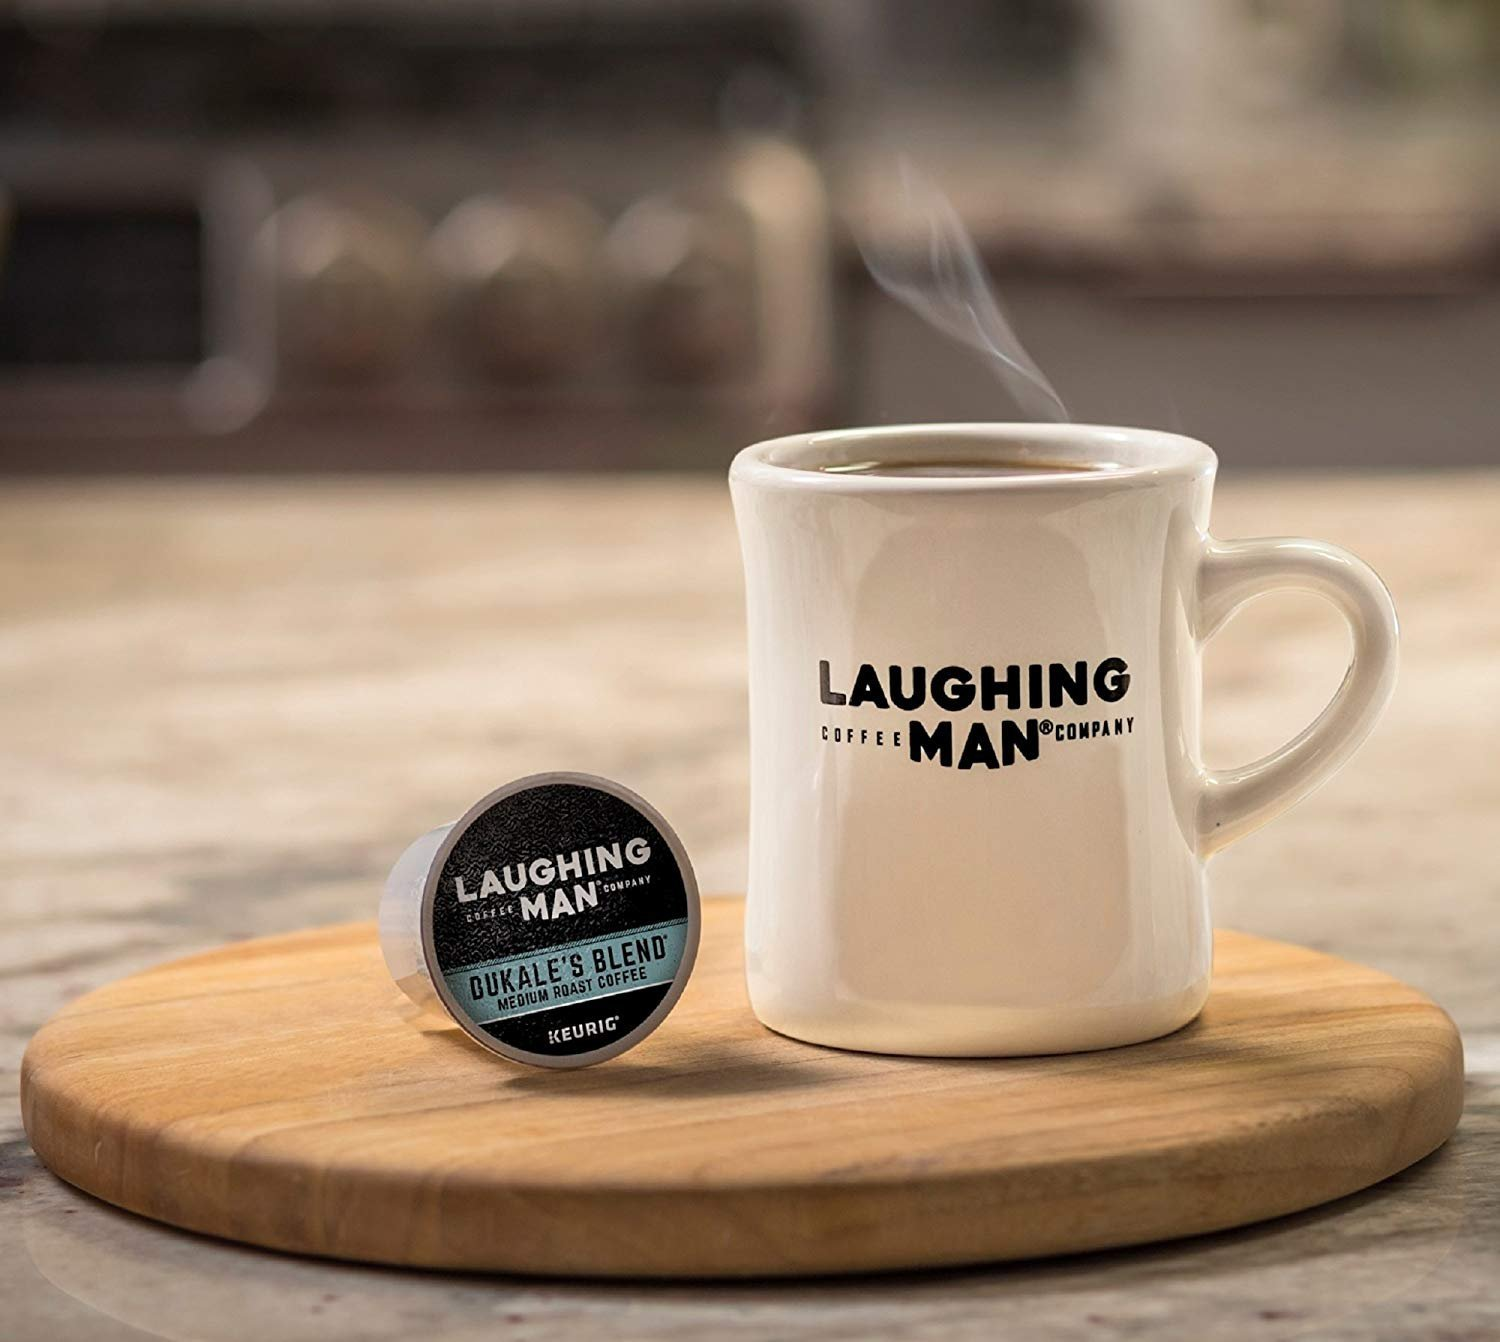 Laughing Man Dukale's Blend Coffee Keurig K-Cups, 96 Count by Laughing Man (Image #6)